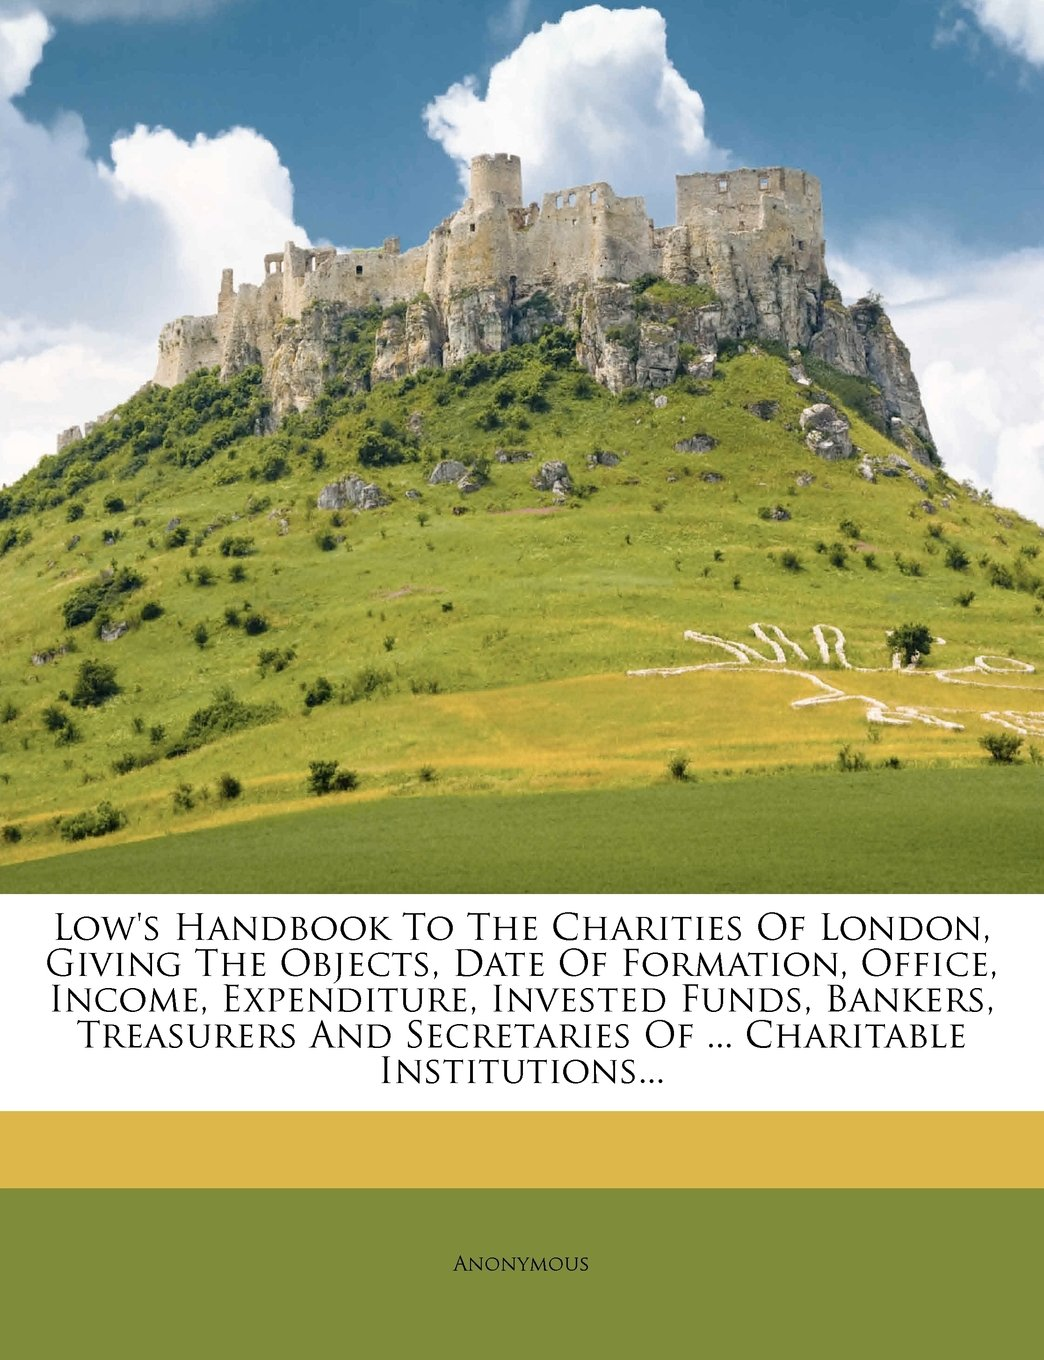 Low's Handbook To The Charities Of London, Giving The Objects, Date Of Formation, Office, Income, Expenditure, Invested Funds, Bankers, Treasurers And Secretaries Of ... Charitable Institutions... pdf epub